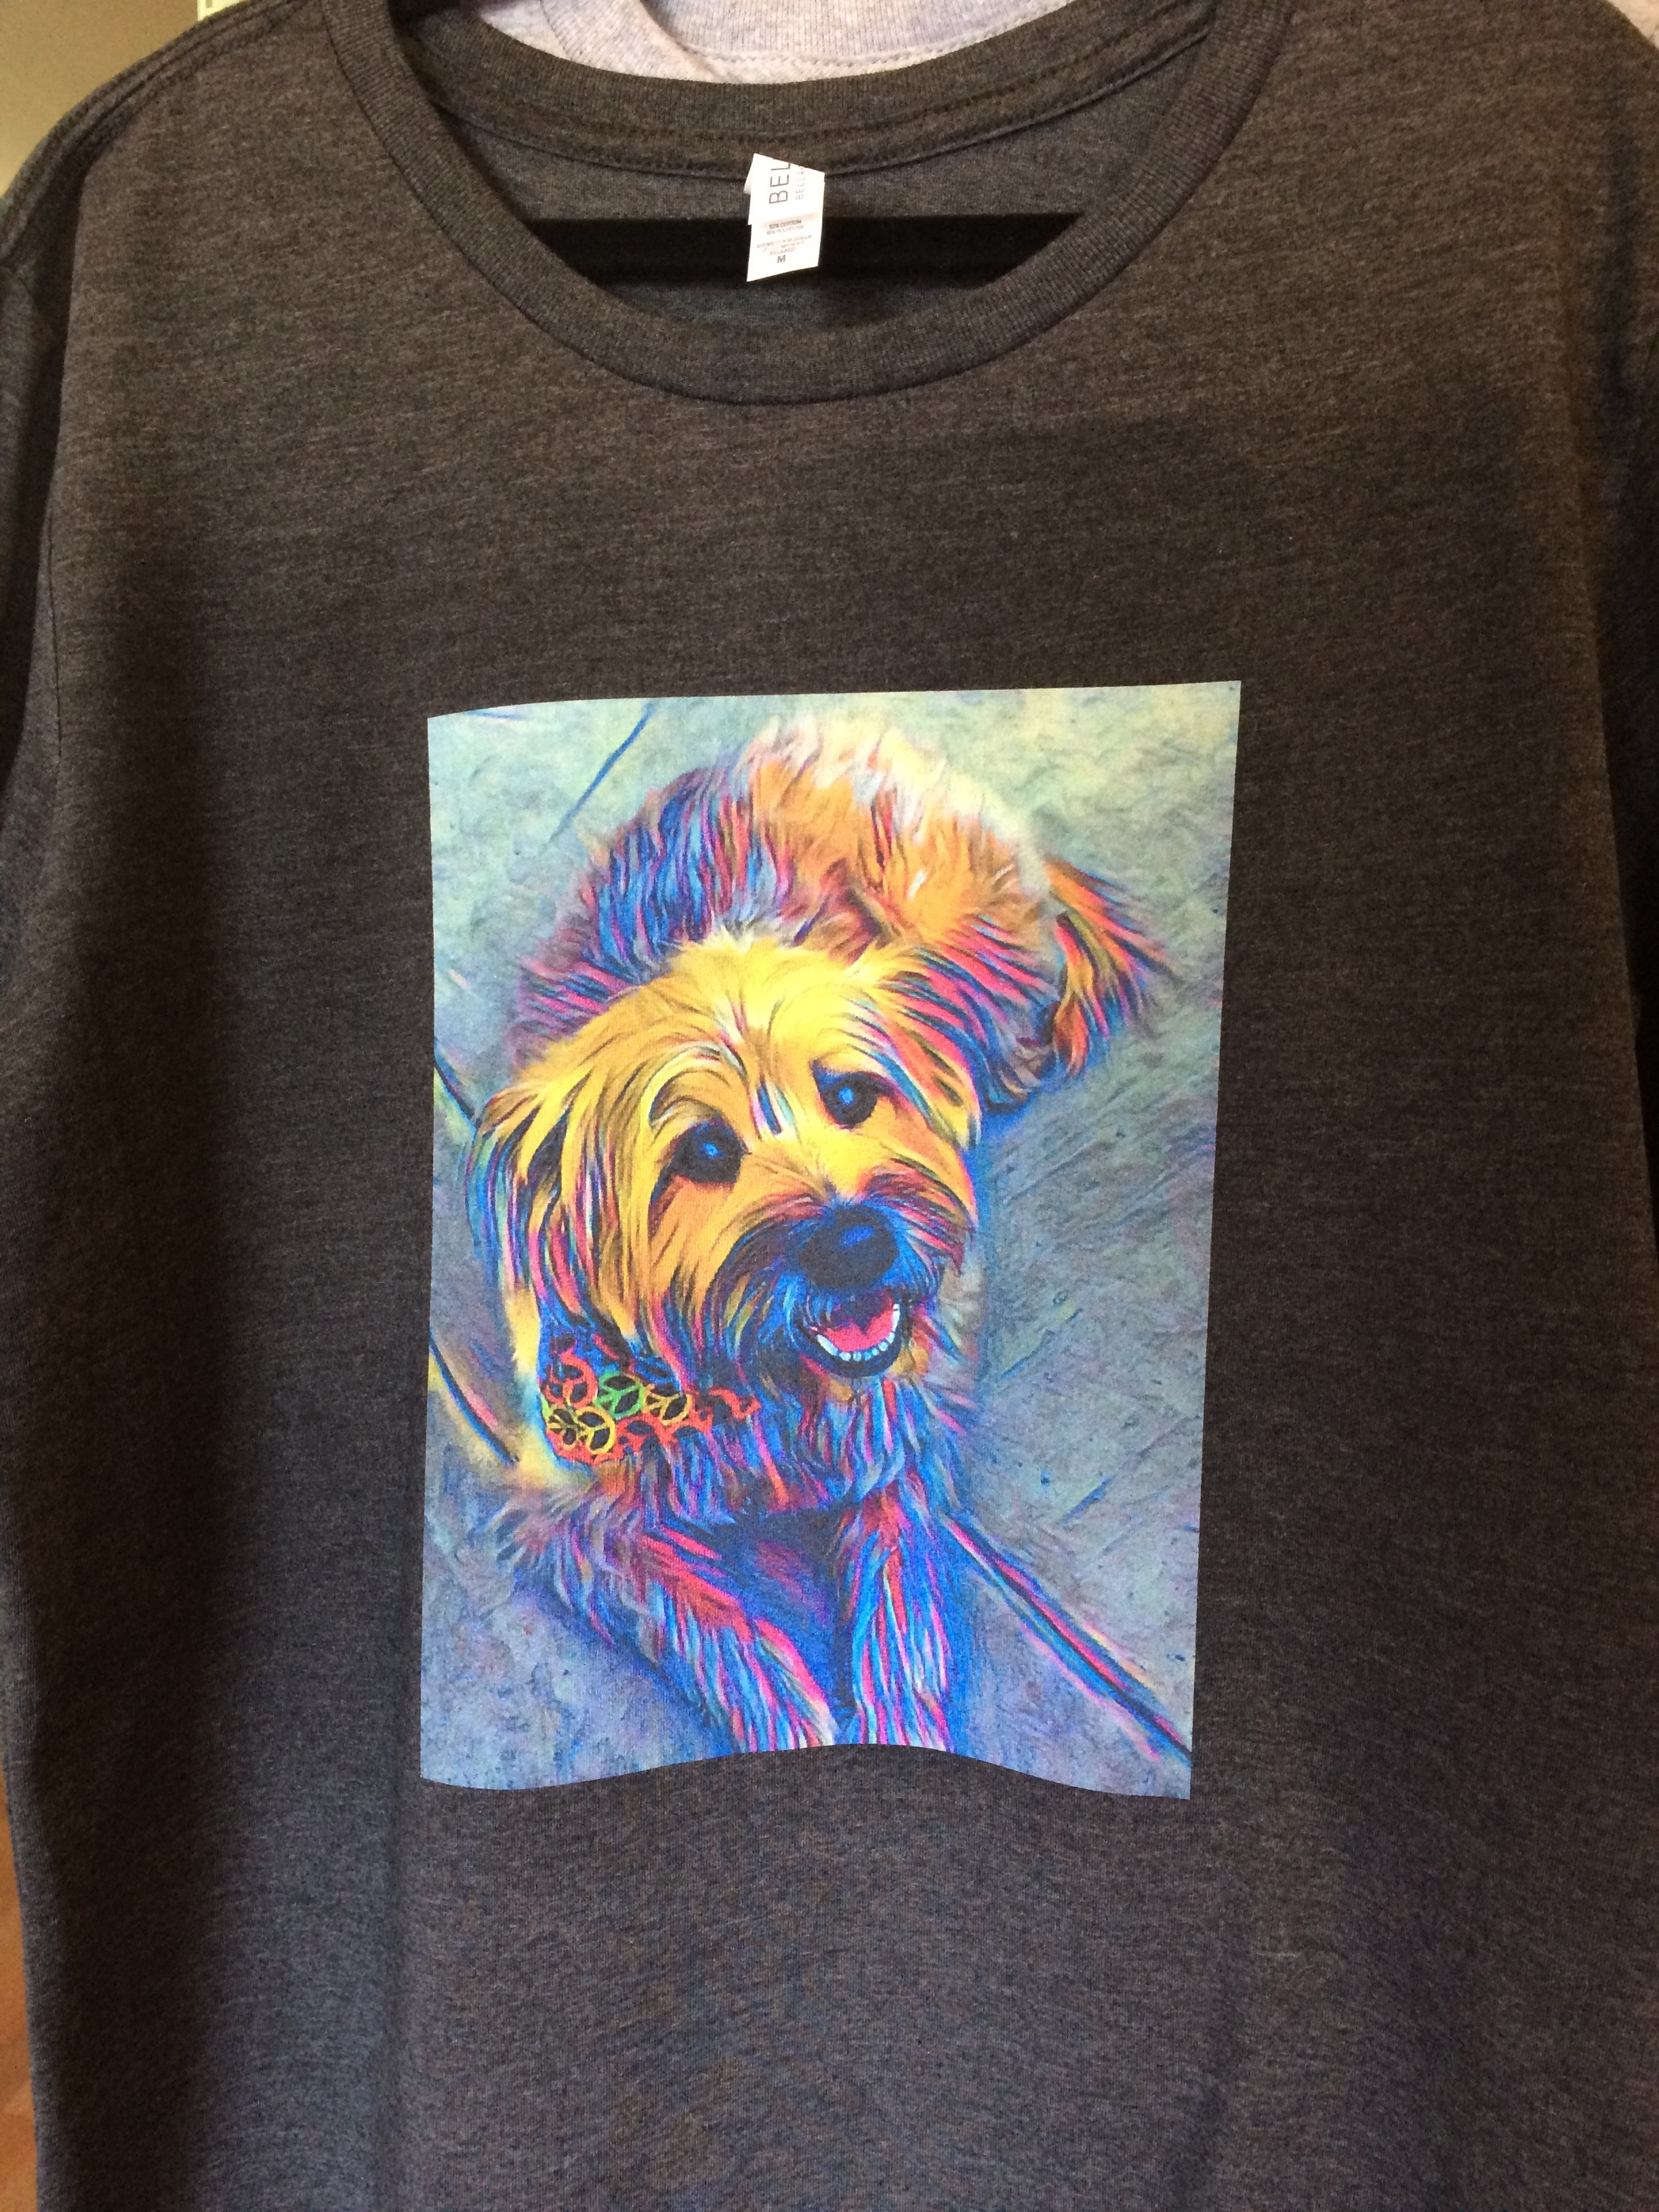 Favorite pets make favorite shirts as we print beautiful, colorful pictures on clothing.